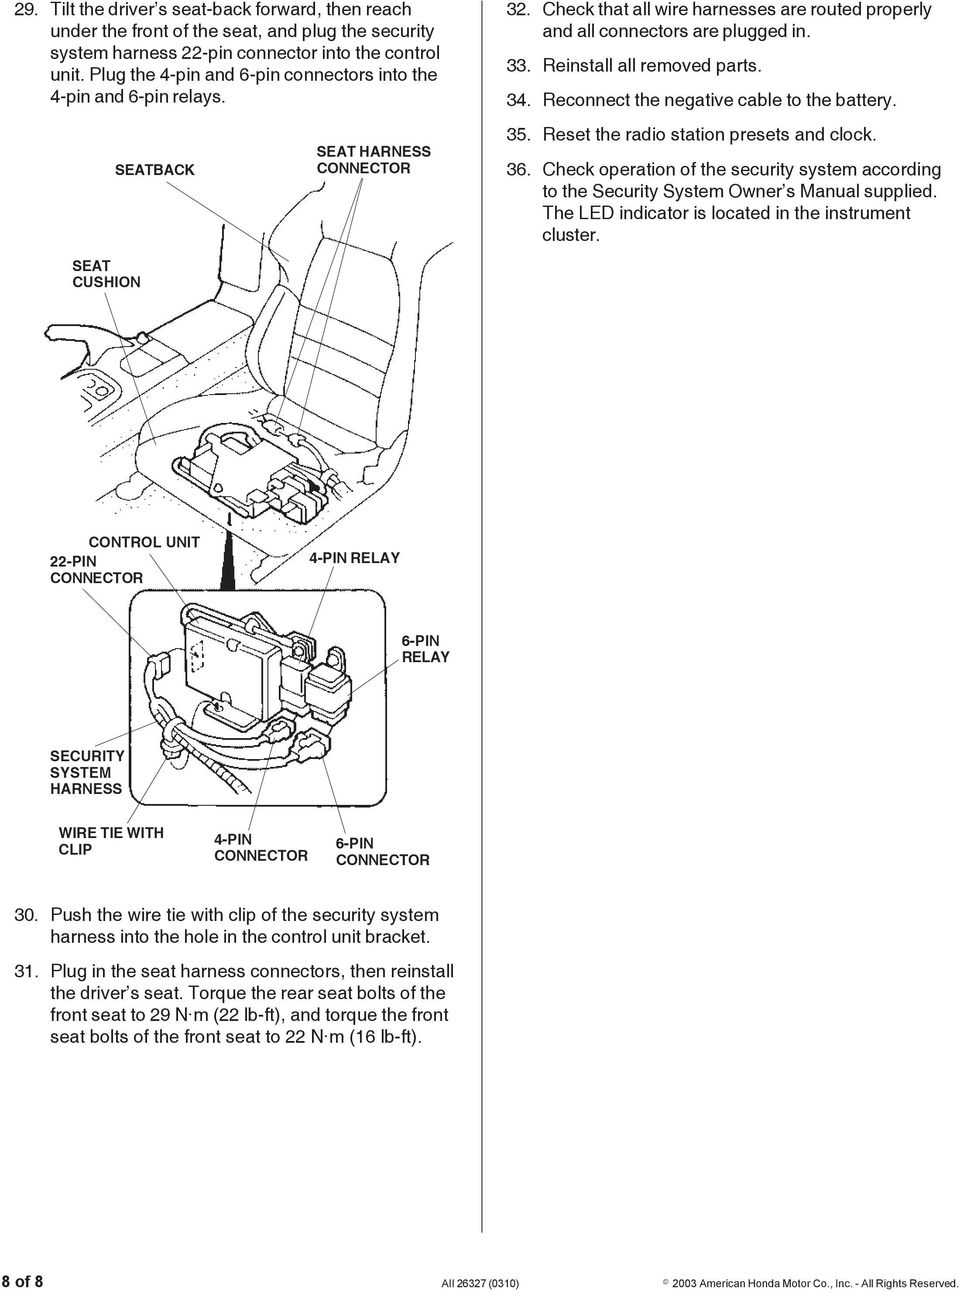 Installation Instructions Pdf 4 Pin Wire Harness Reinstall All Removed Parts 34 Reconnect The Negative Cable To Battery 35